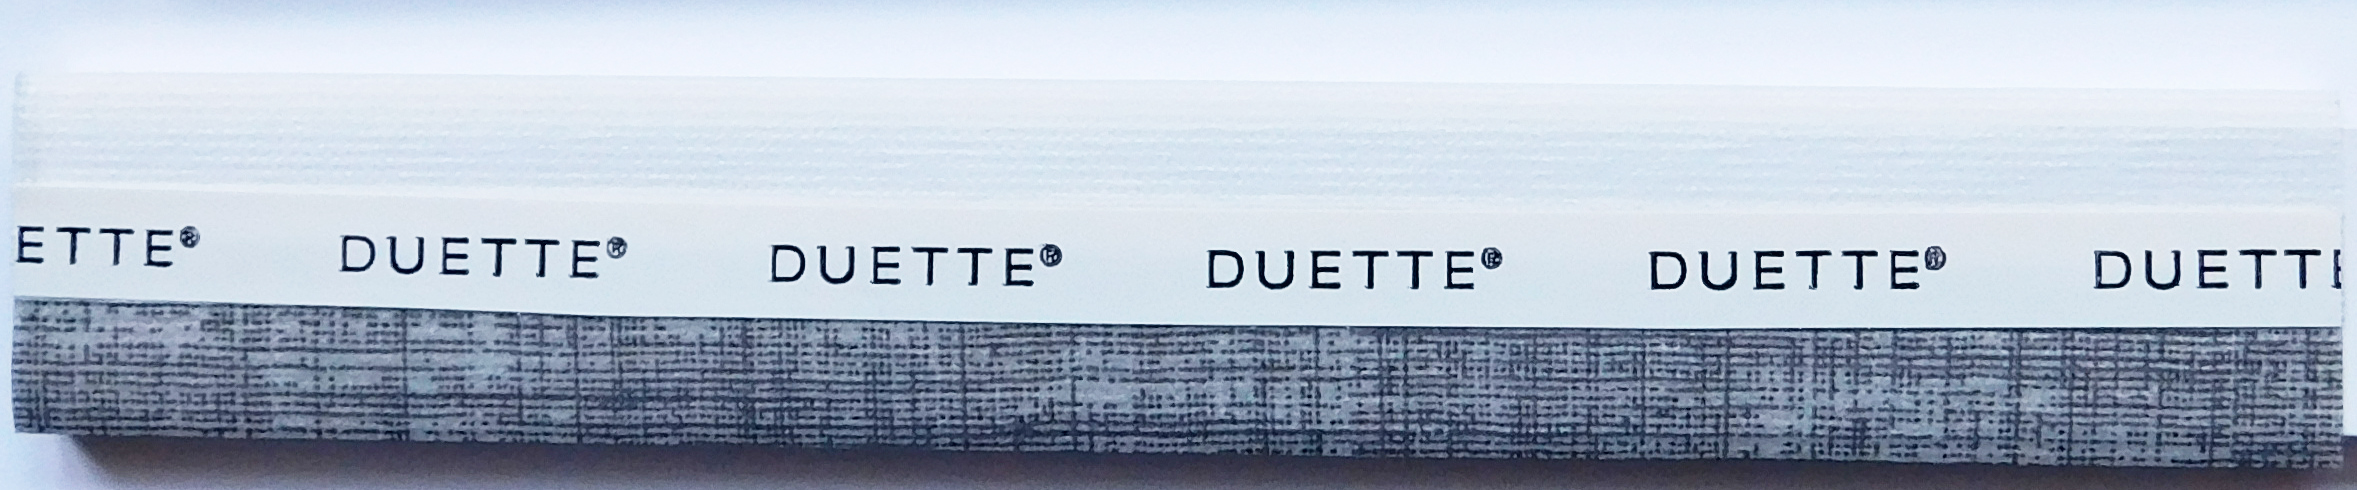 Linum Charcoal Duette Blind Fabric Sample